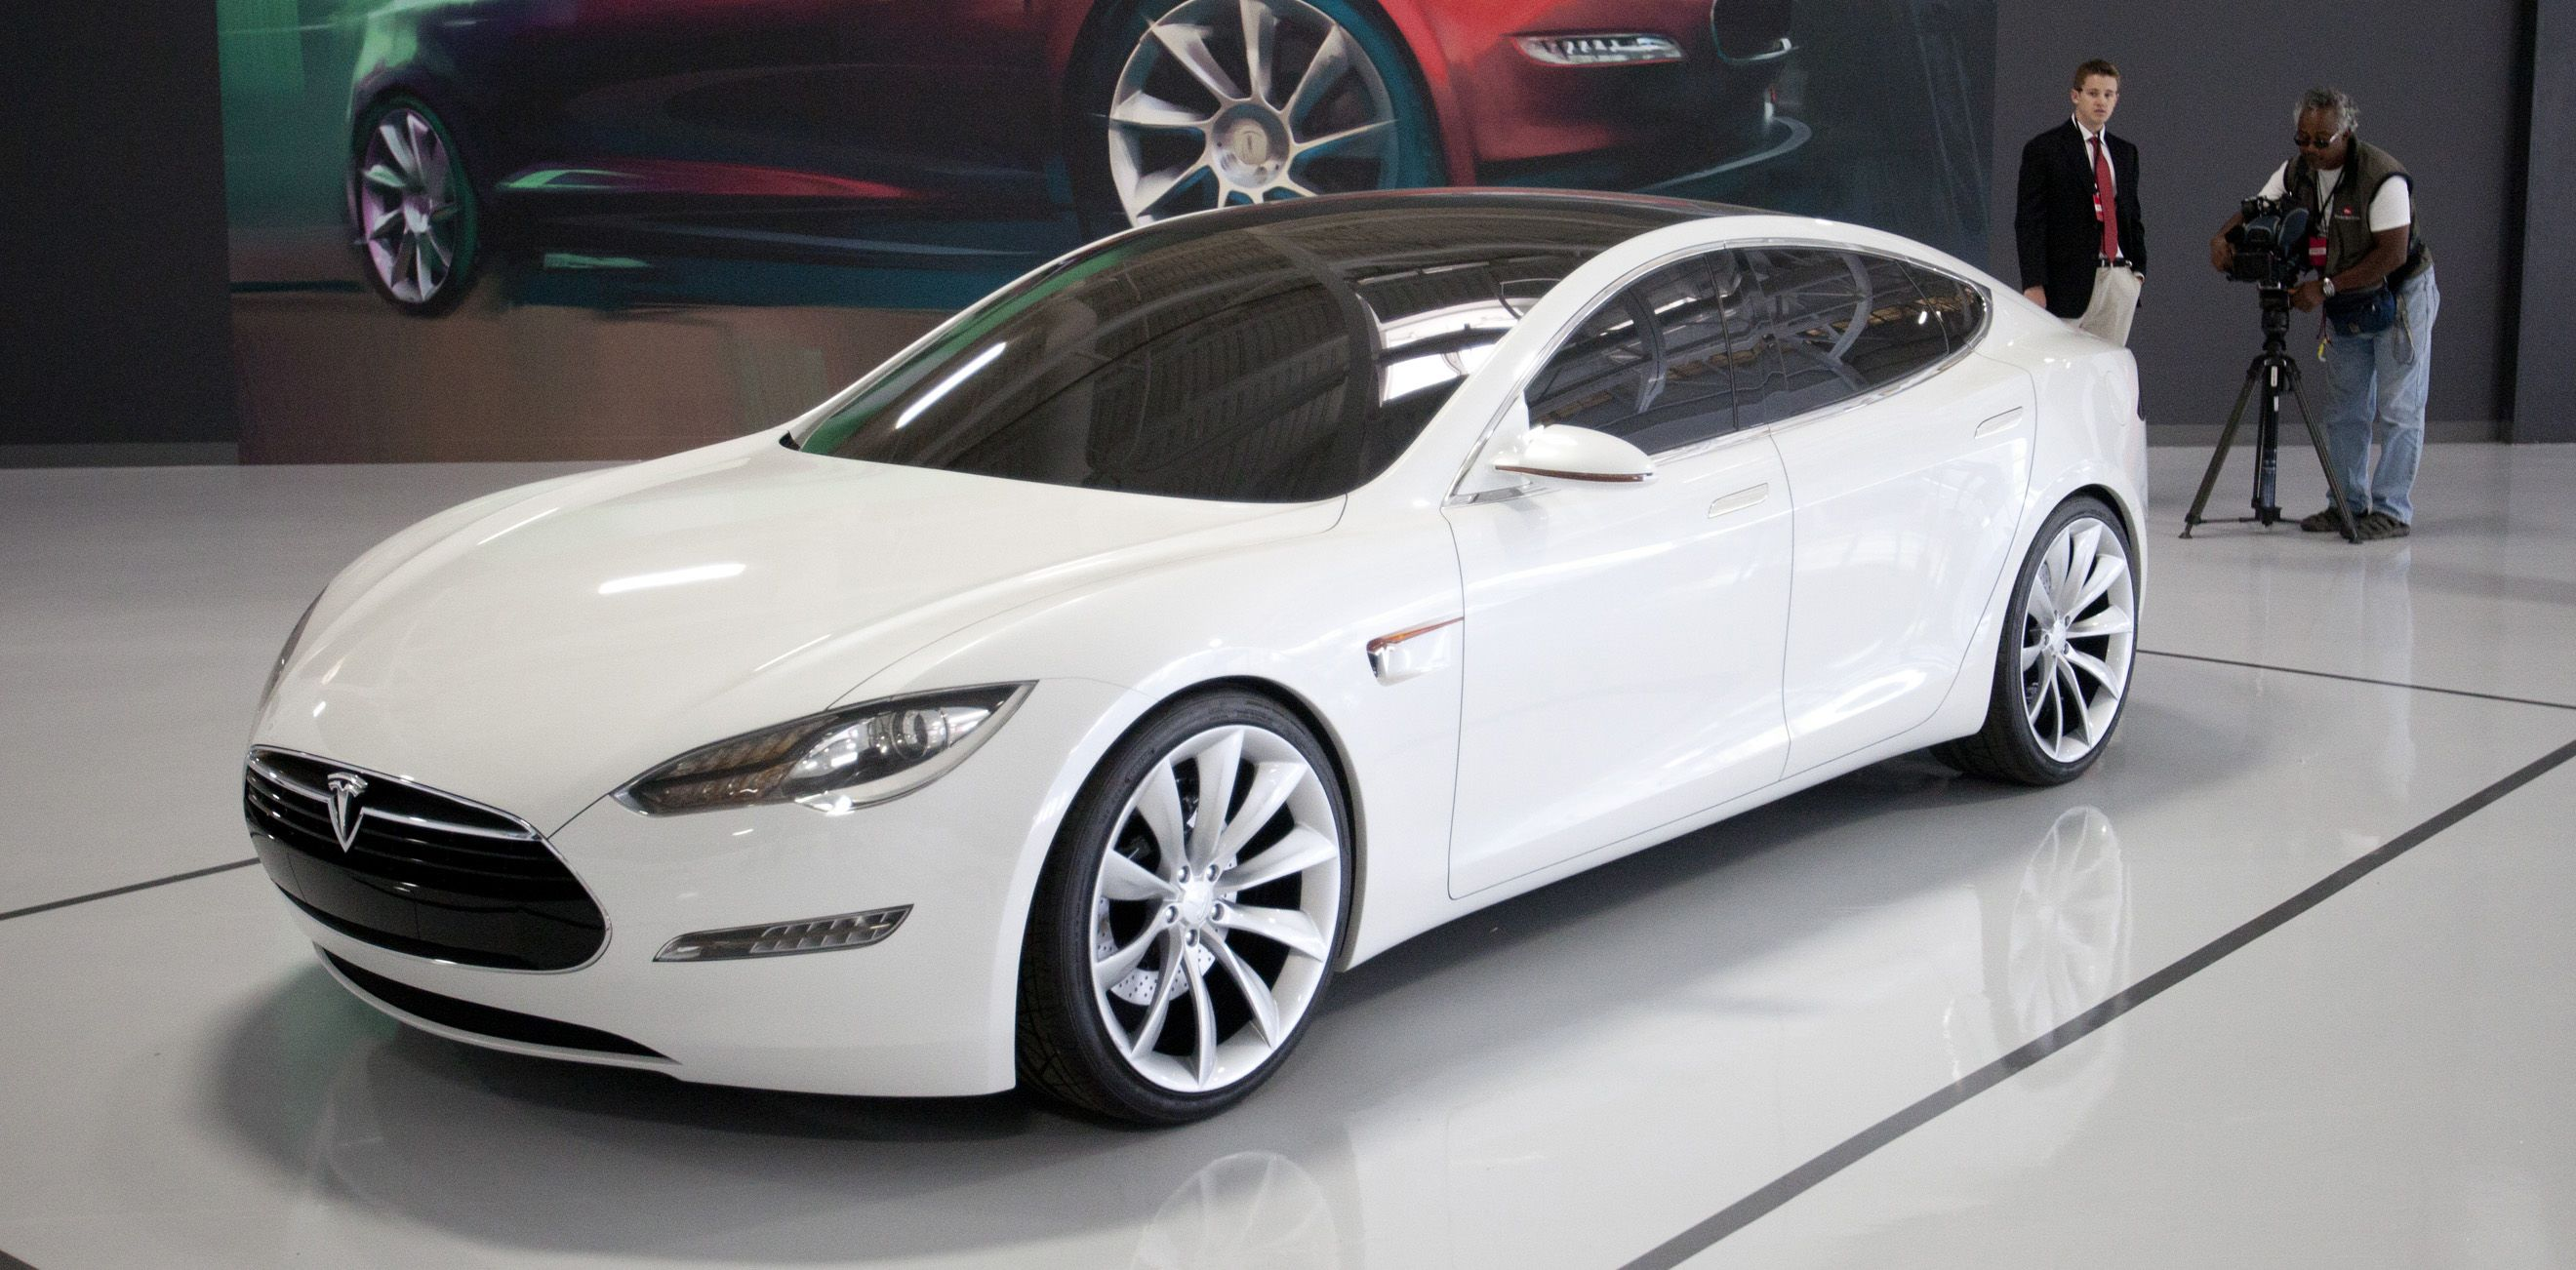 Tesla Model S Is No 1 On Consumer Reports Top 10 List Tesla Model S Tesla Model Tesla Electric Car